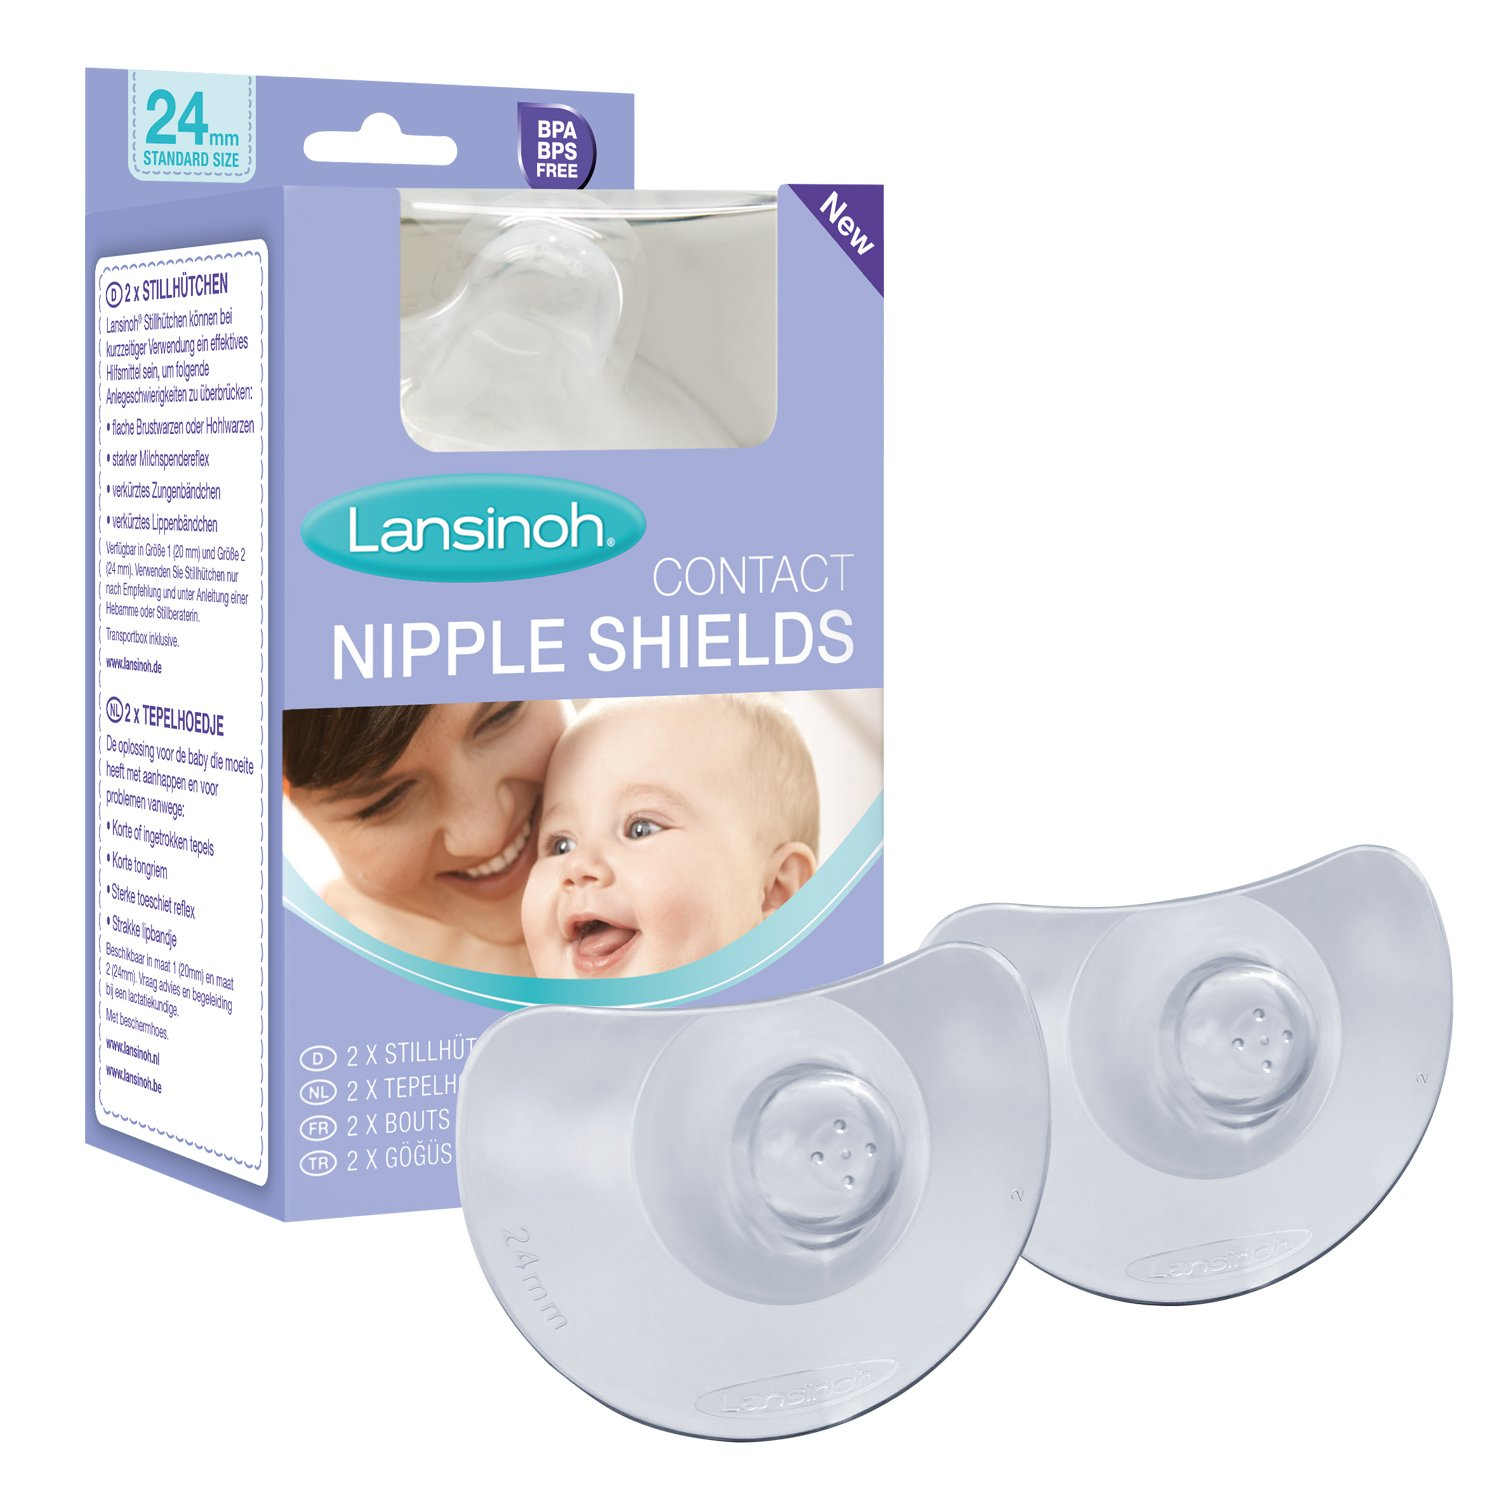 Lansinoh Contact Nipple Shields with Case (20mm Medium) Lansinoh Laboratories Inc. UK